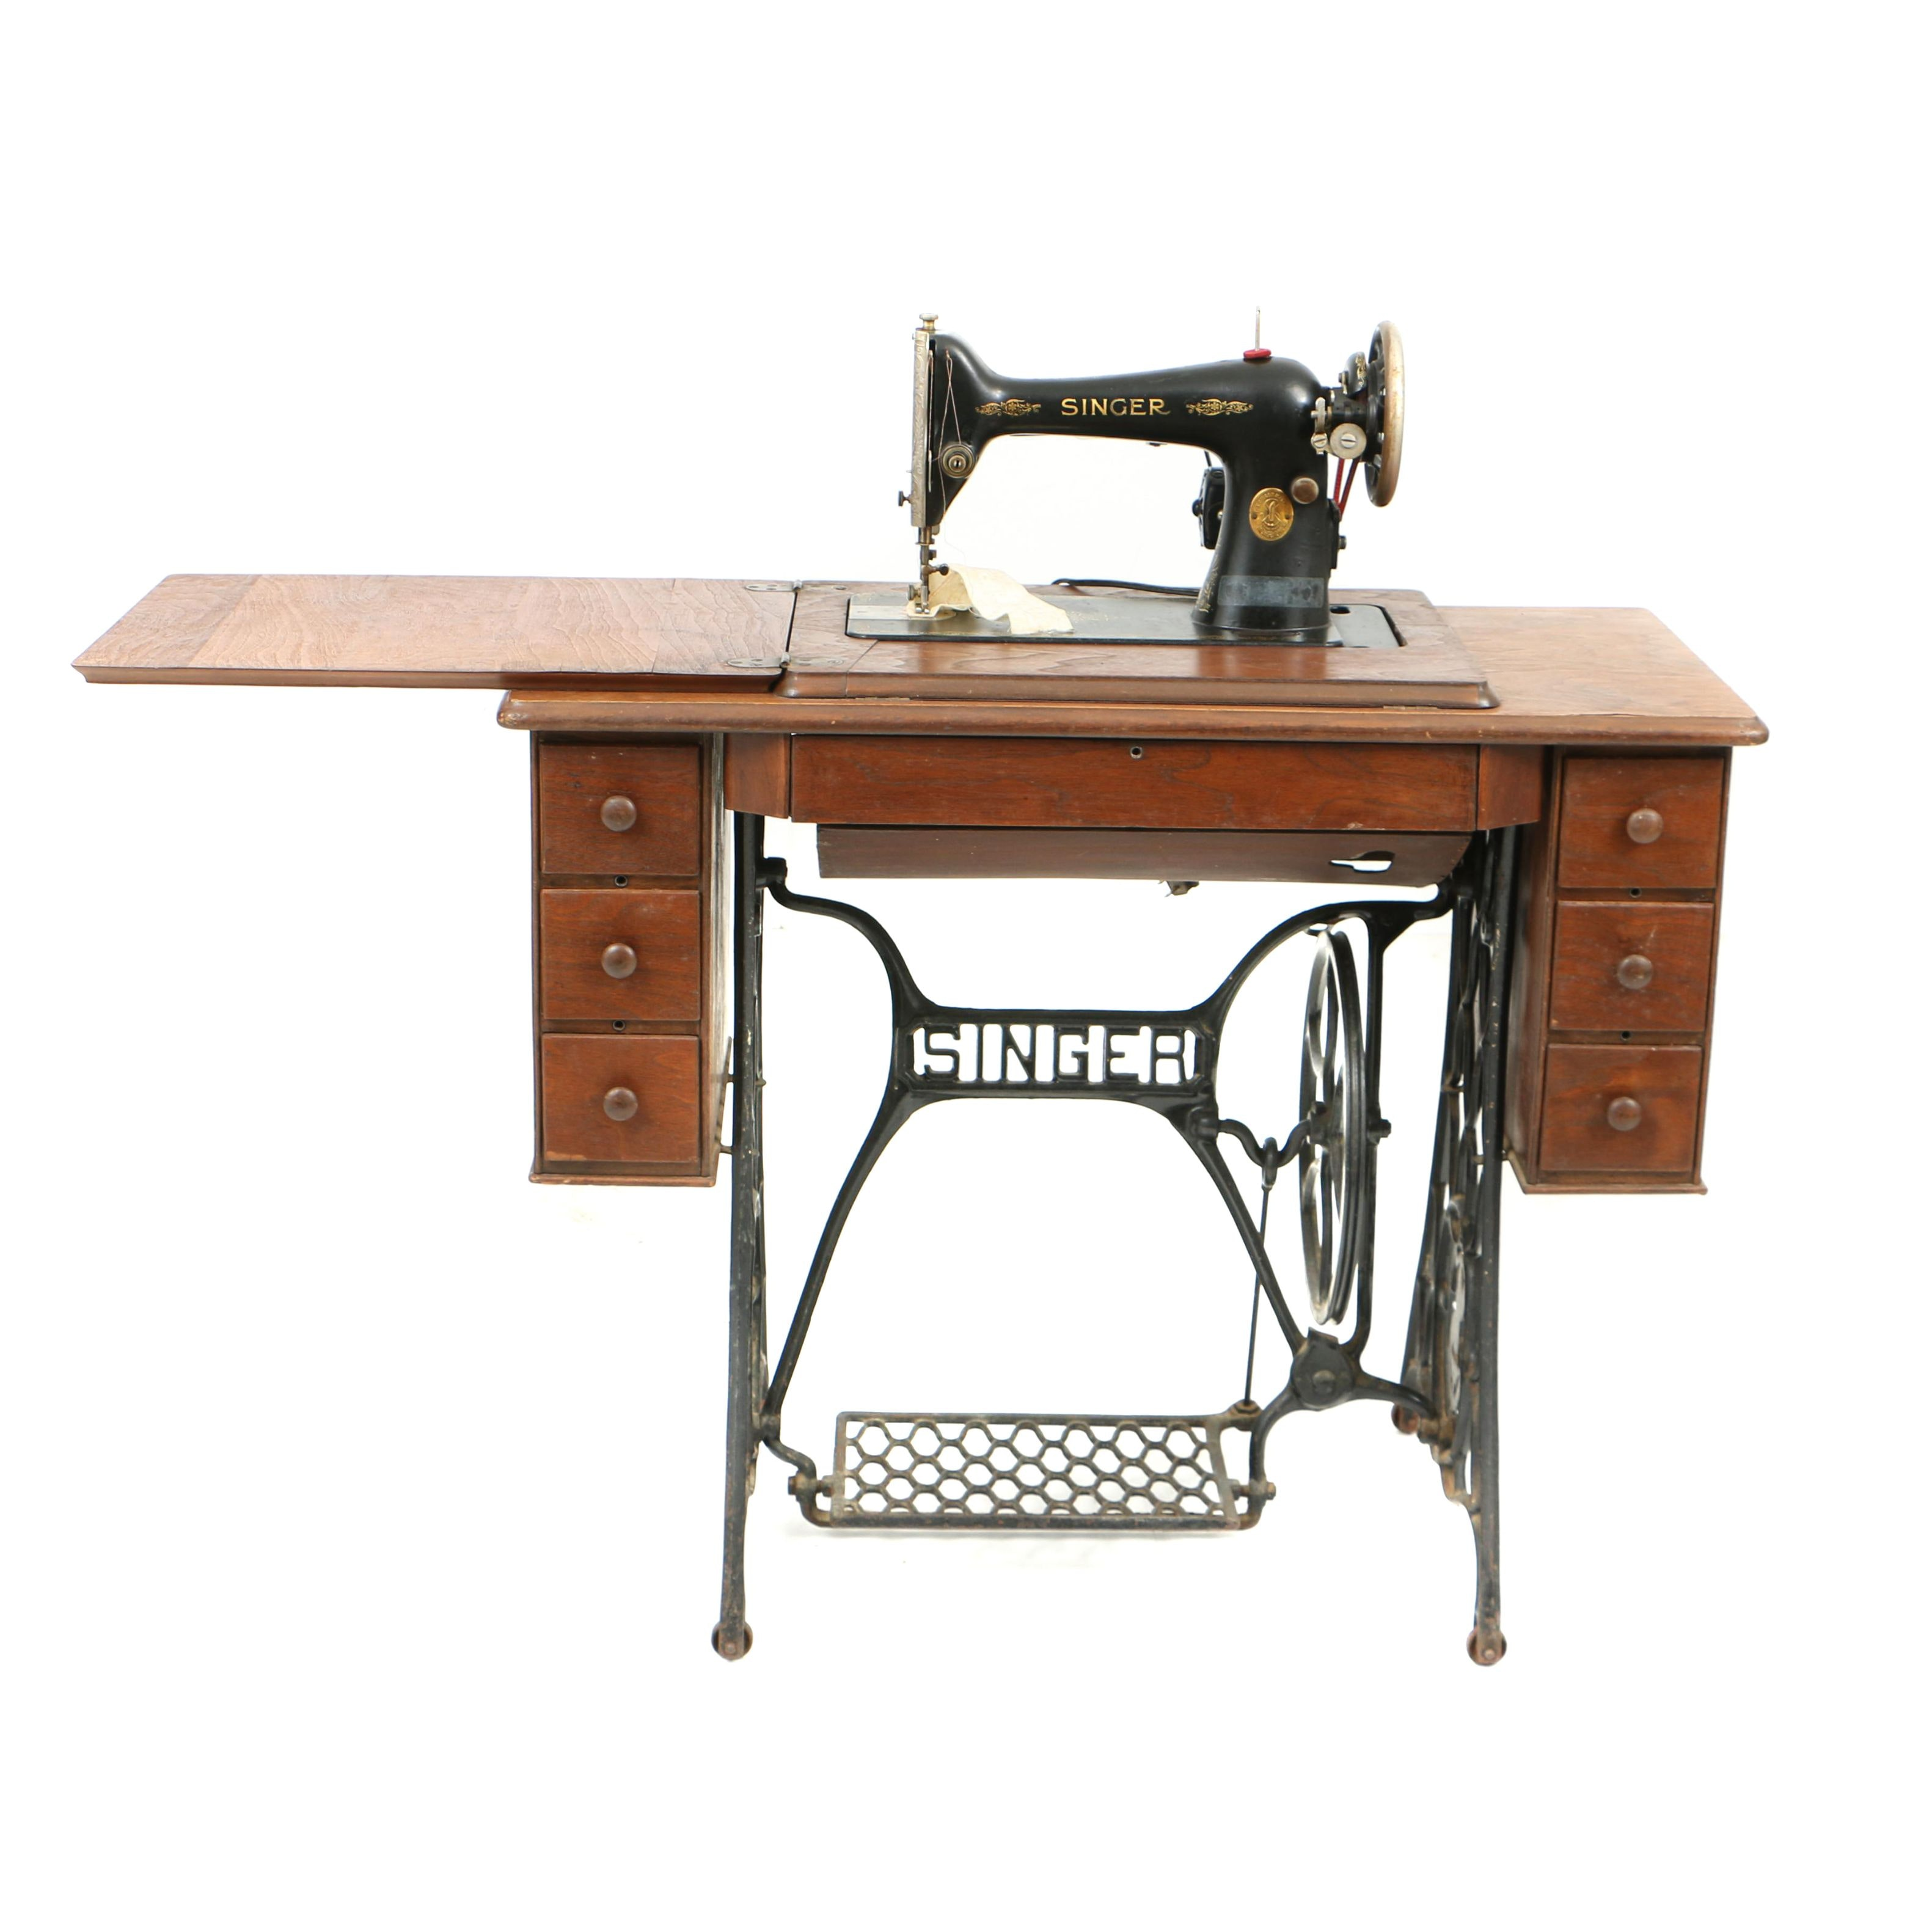 Early 20th Century Singer Sewing Machine with Treadle Table and Attachments